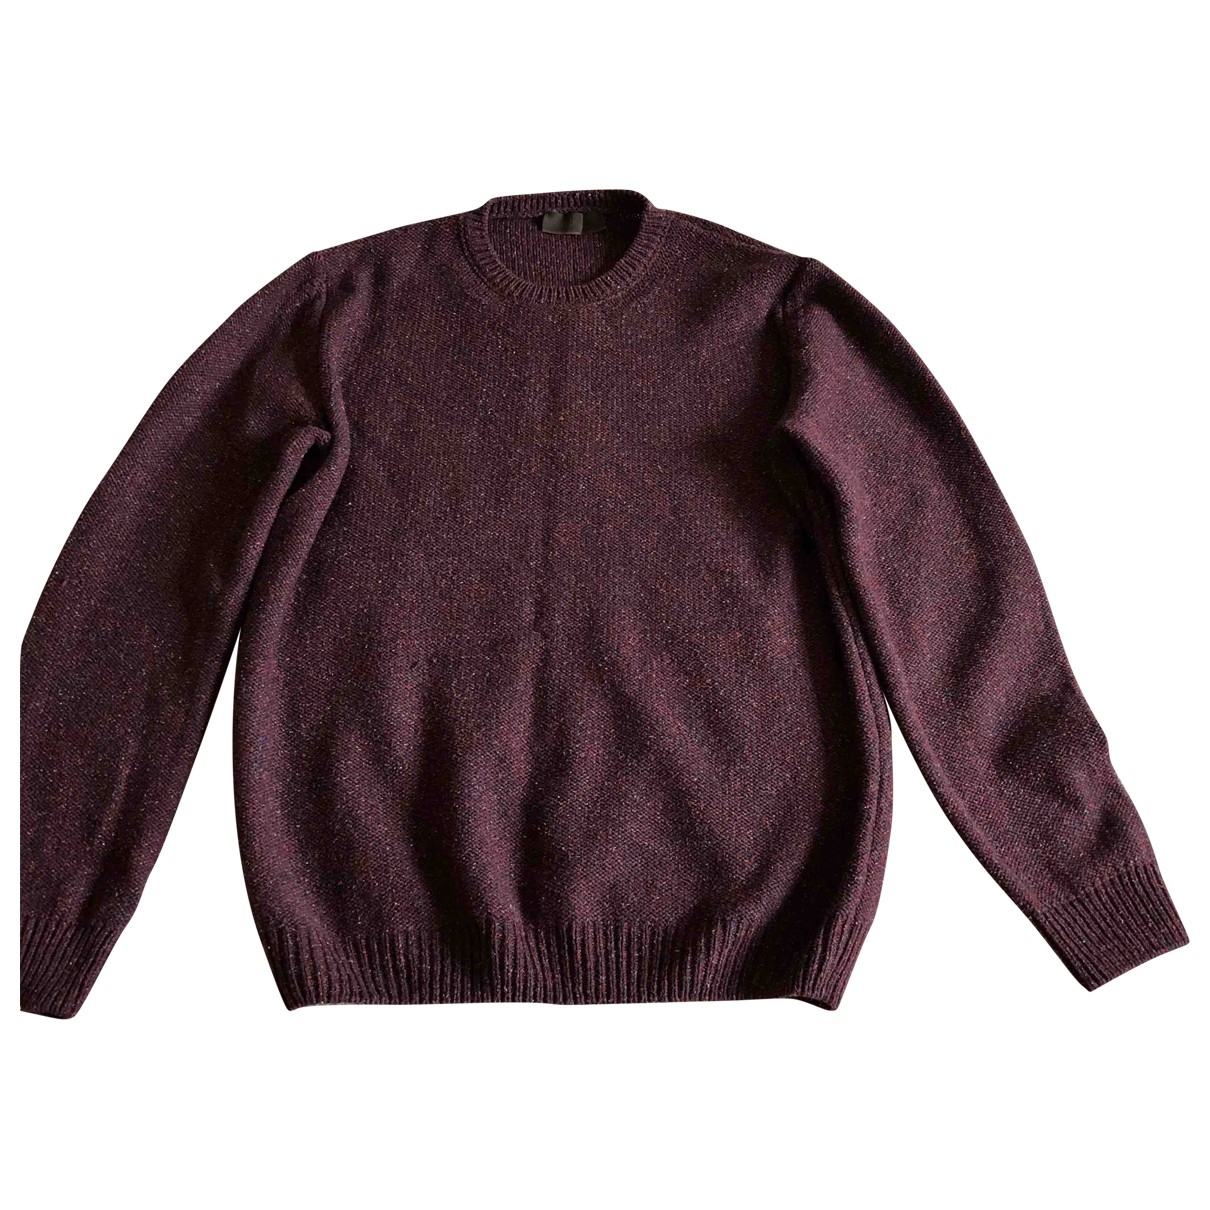 Altea \N Burgundy Wool Knitwear & Sweatshirts for Men S International